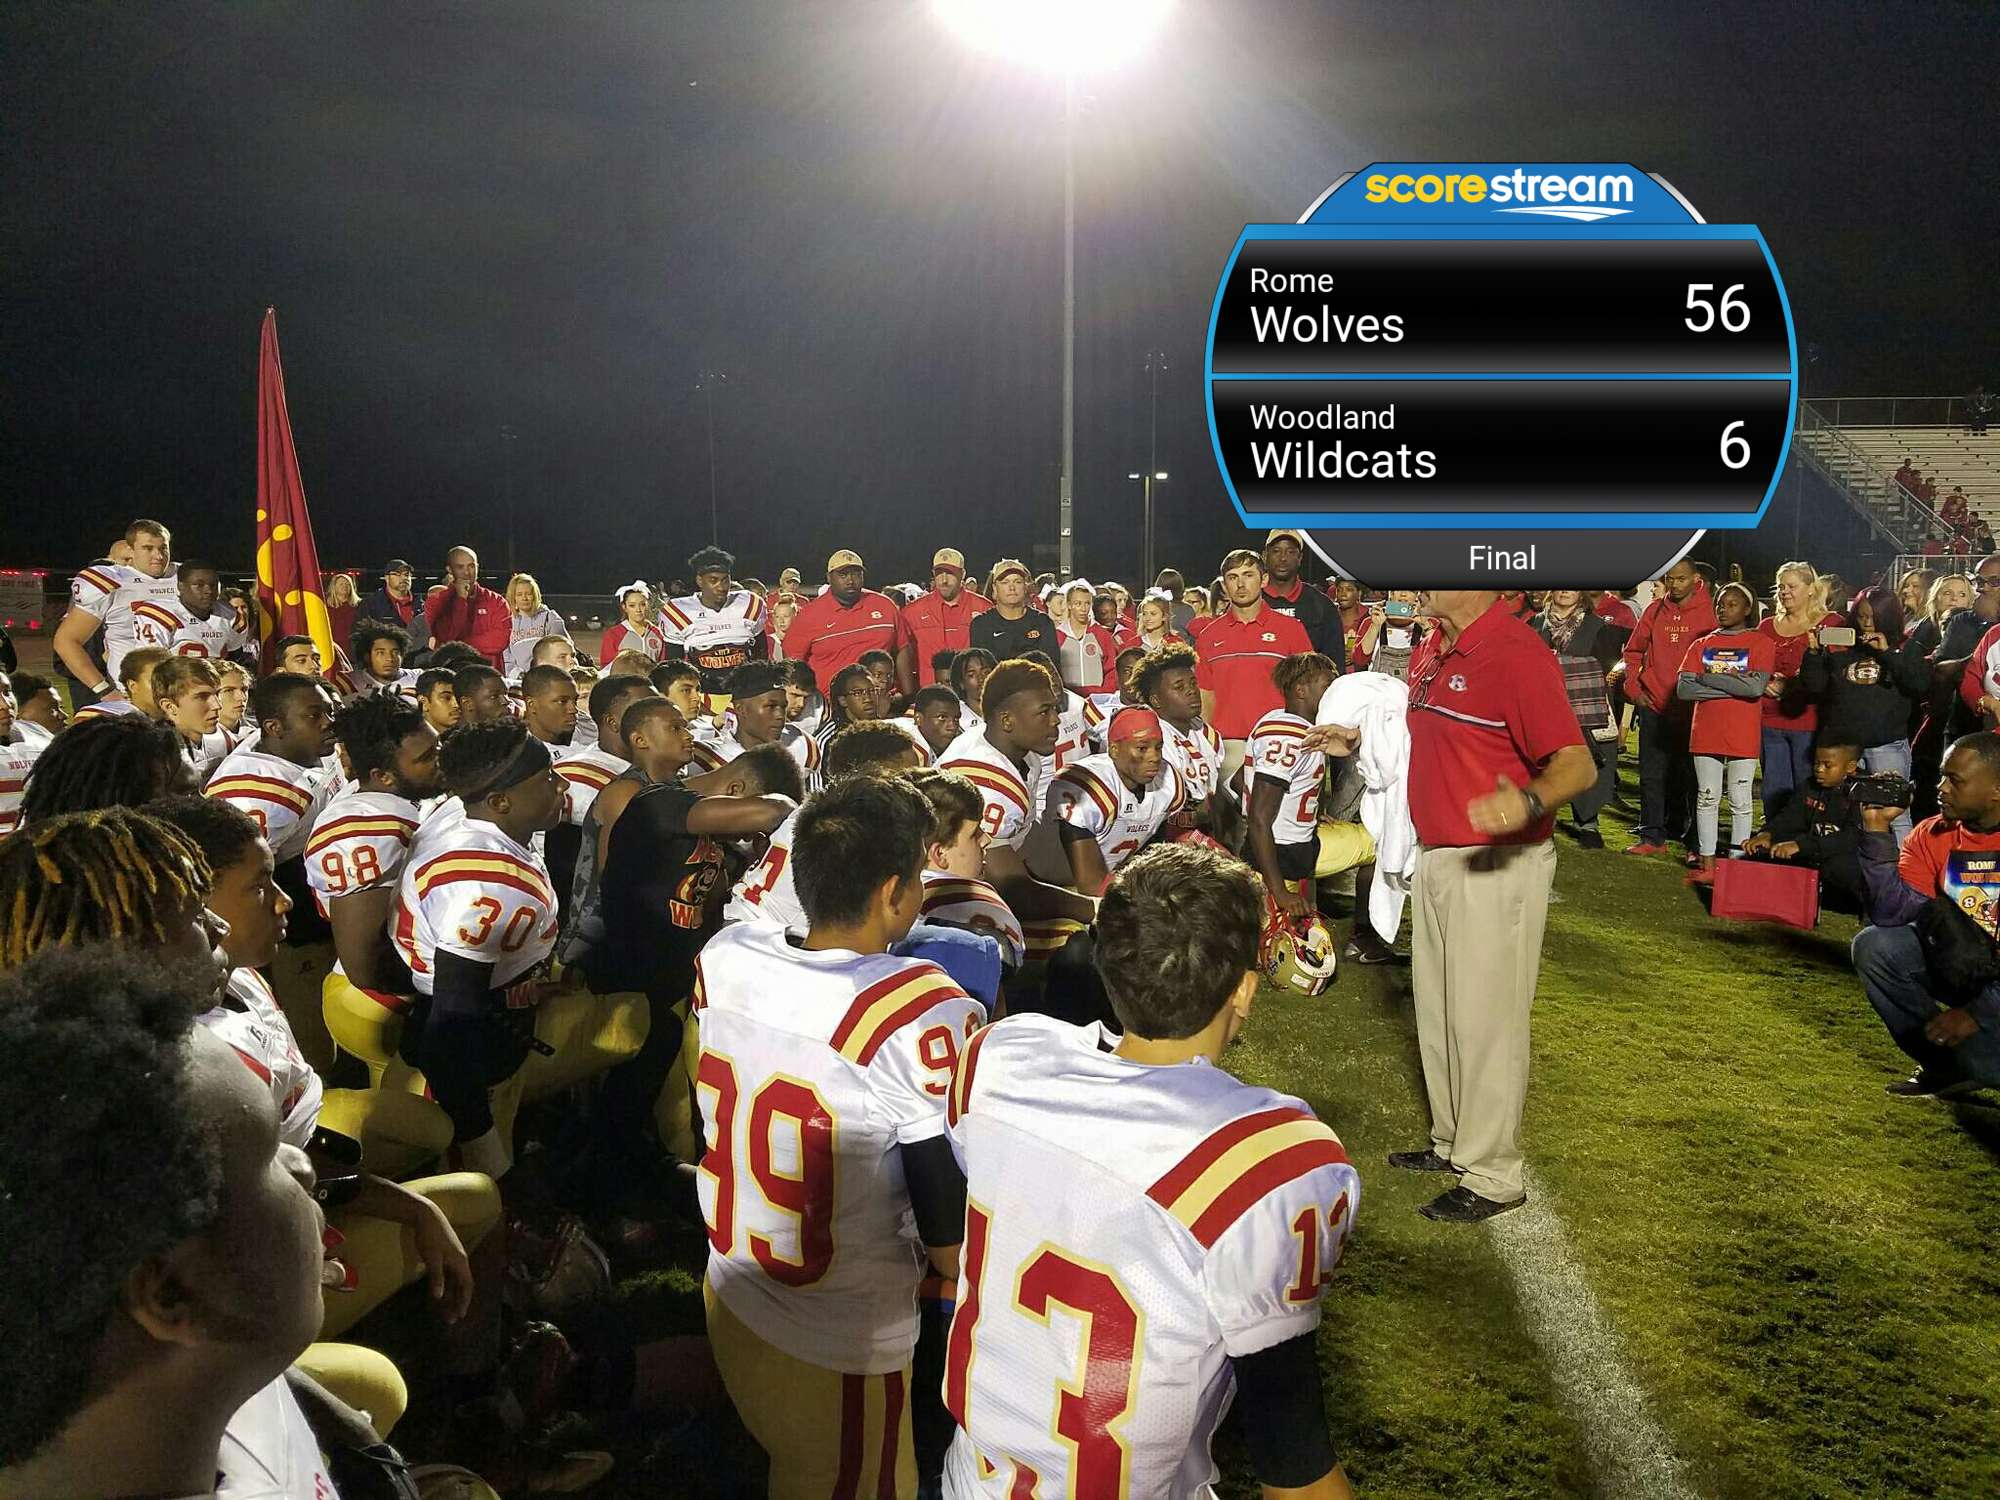 The Rome Wolves Vs The Woodland Wildcats Scorestream